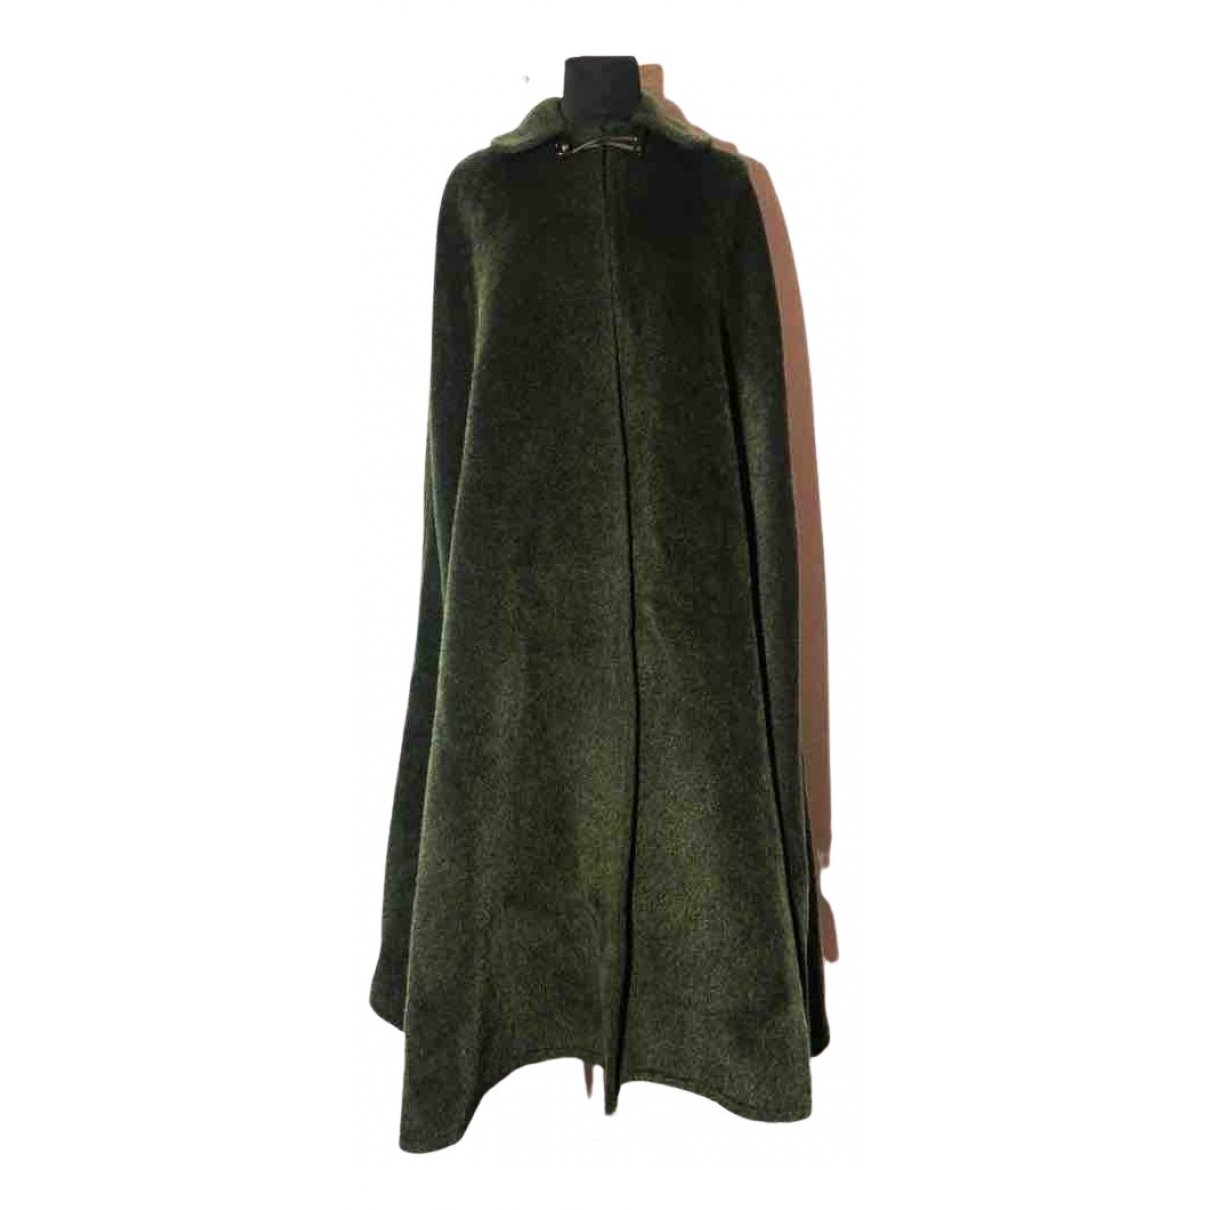 Yves Saint Laurent N Green Wool jacket for Women One Size UK